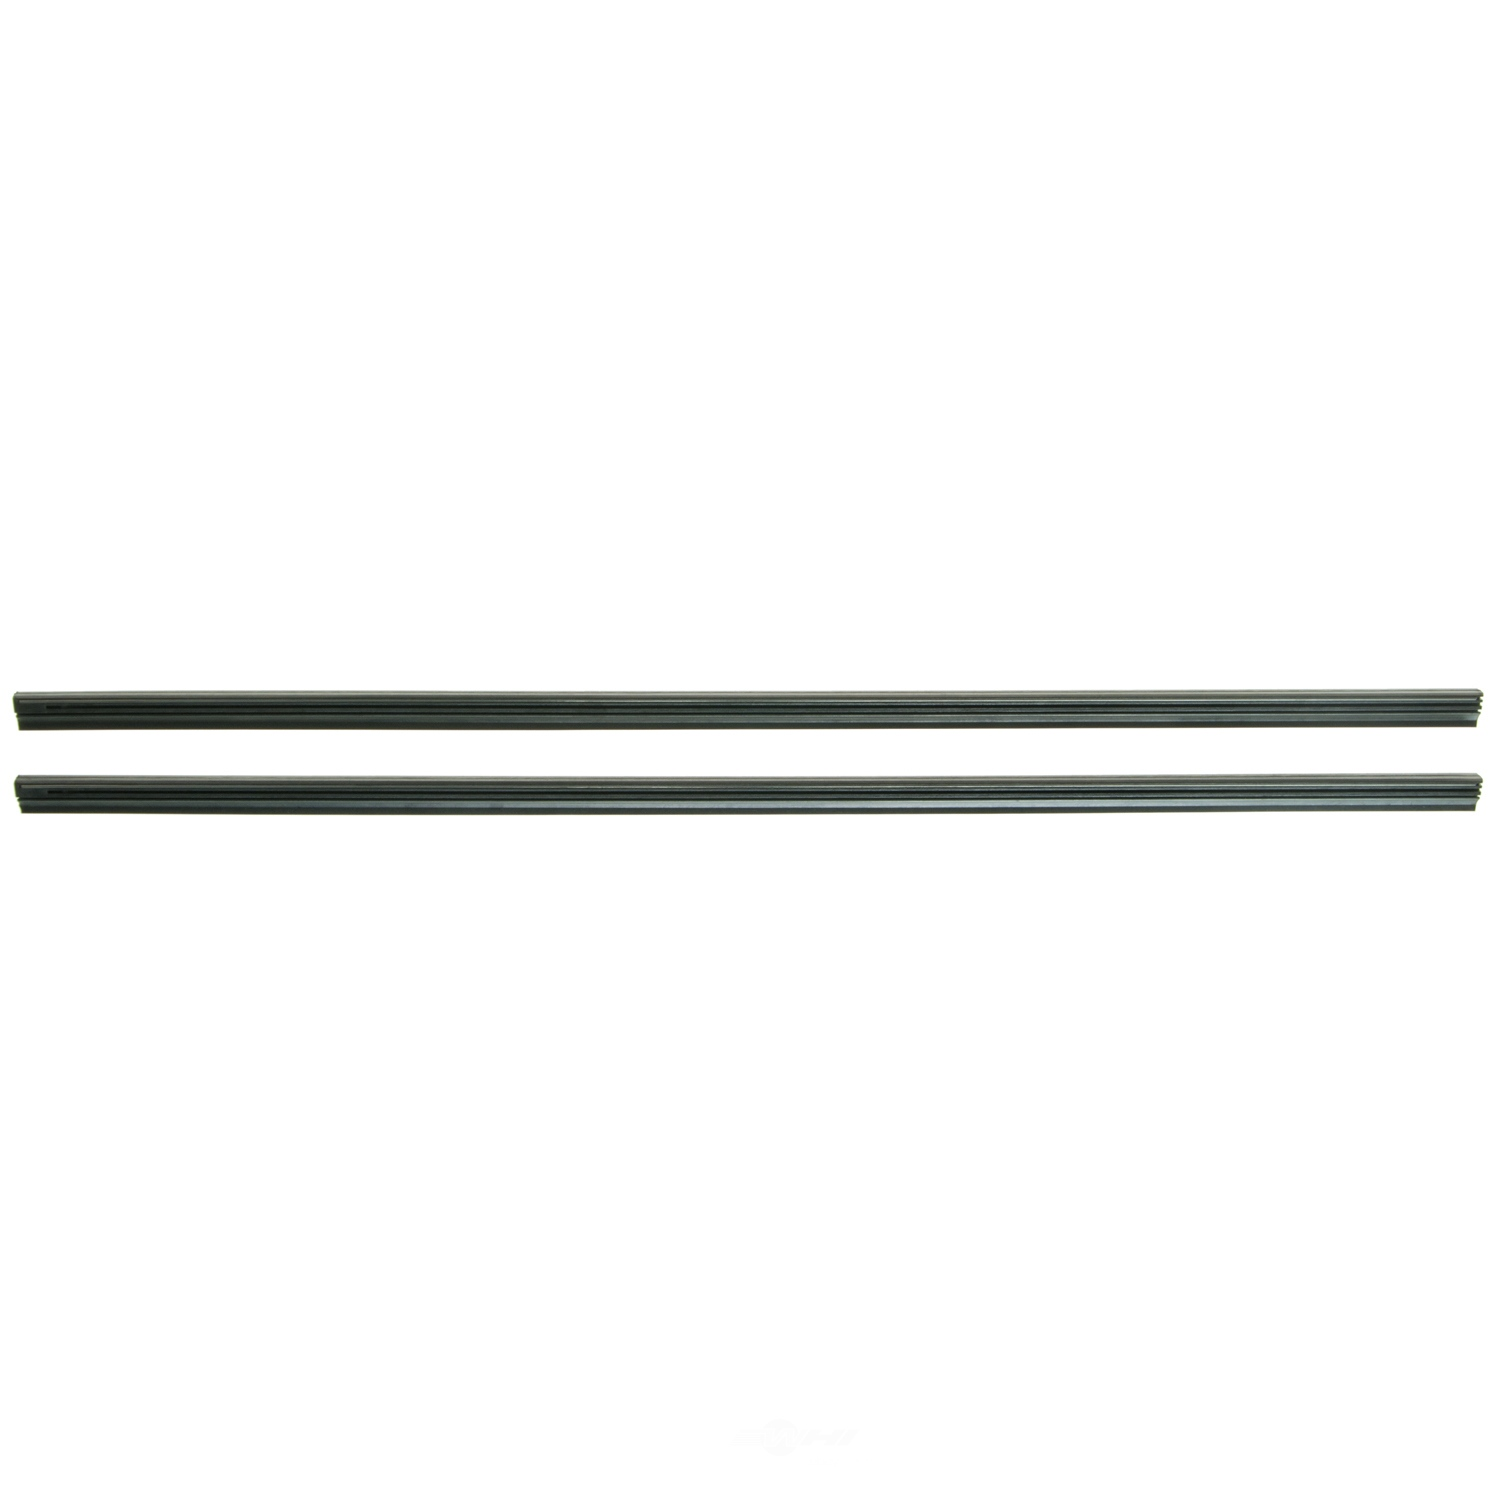 ANCO WIPER PRODUCTS - Stainless Steel Series Refills (Front) - ANC 19-22